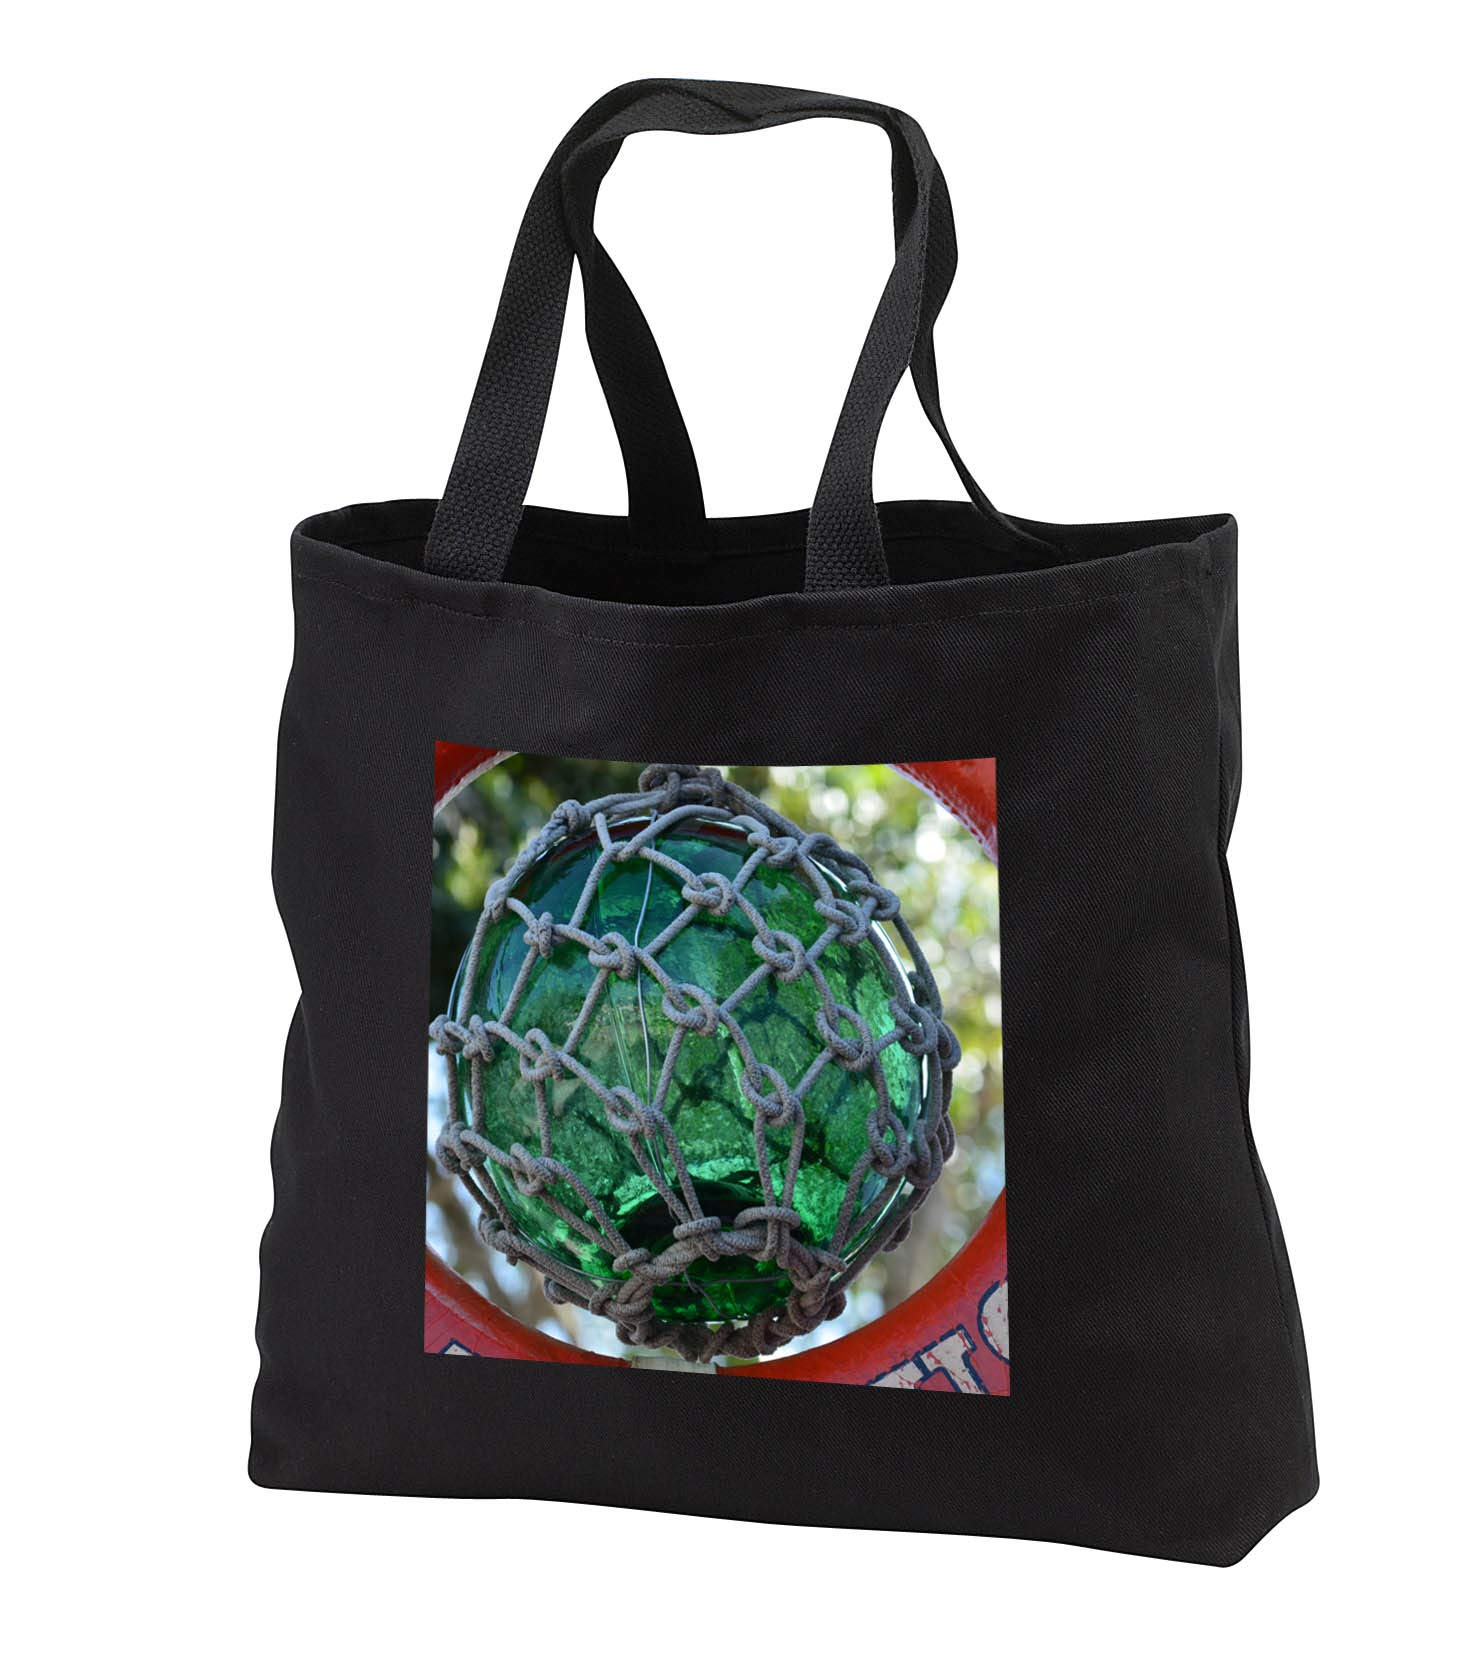 Susans Zoo Crew Florida - green glass fishing float in net nautical - Tote Bags - Black Tote Bag JUMBO 20w x 15h x 5d (tb_294143_3)